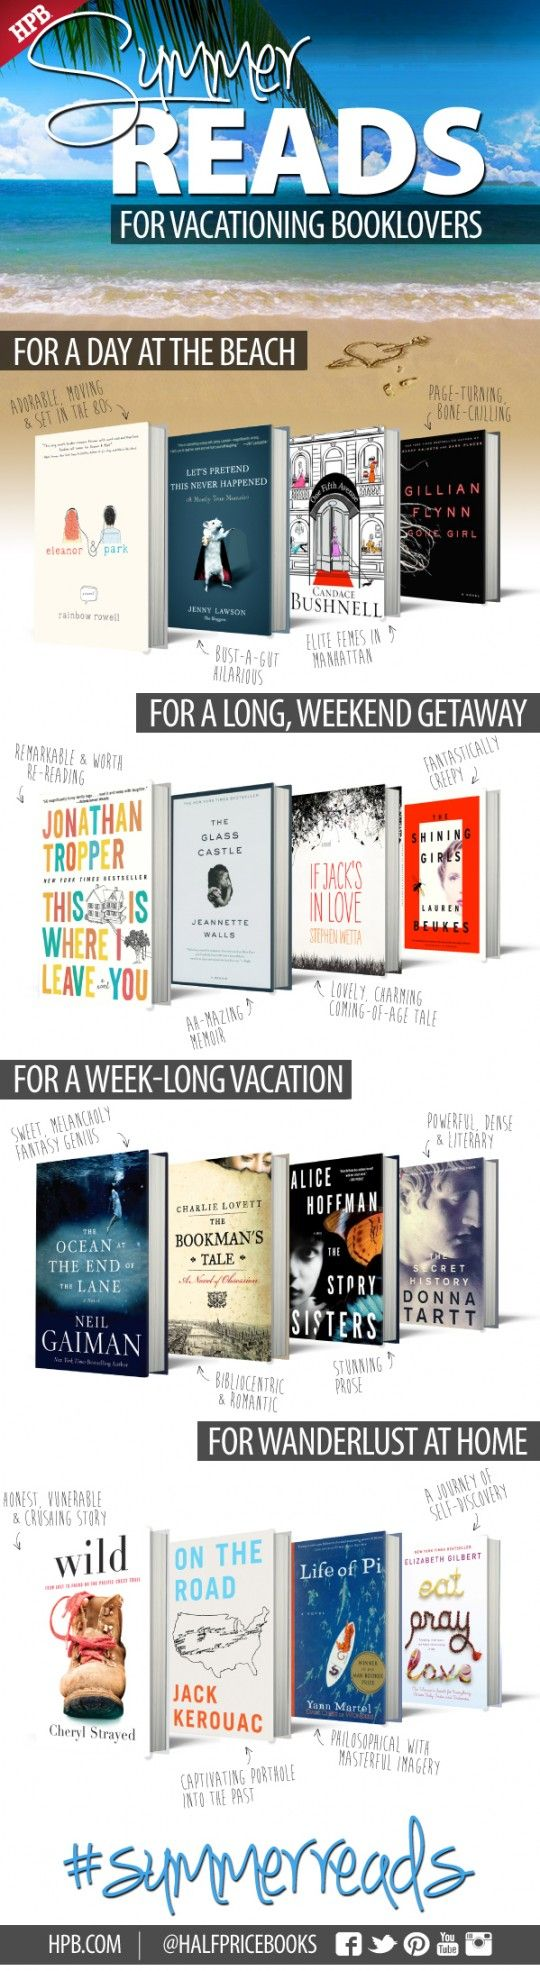 Must-read books for summer 2013 (infographic) I have several of these that I haven't picked up to read yet. Maybe that'll change